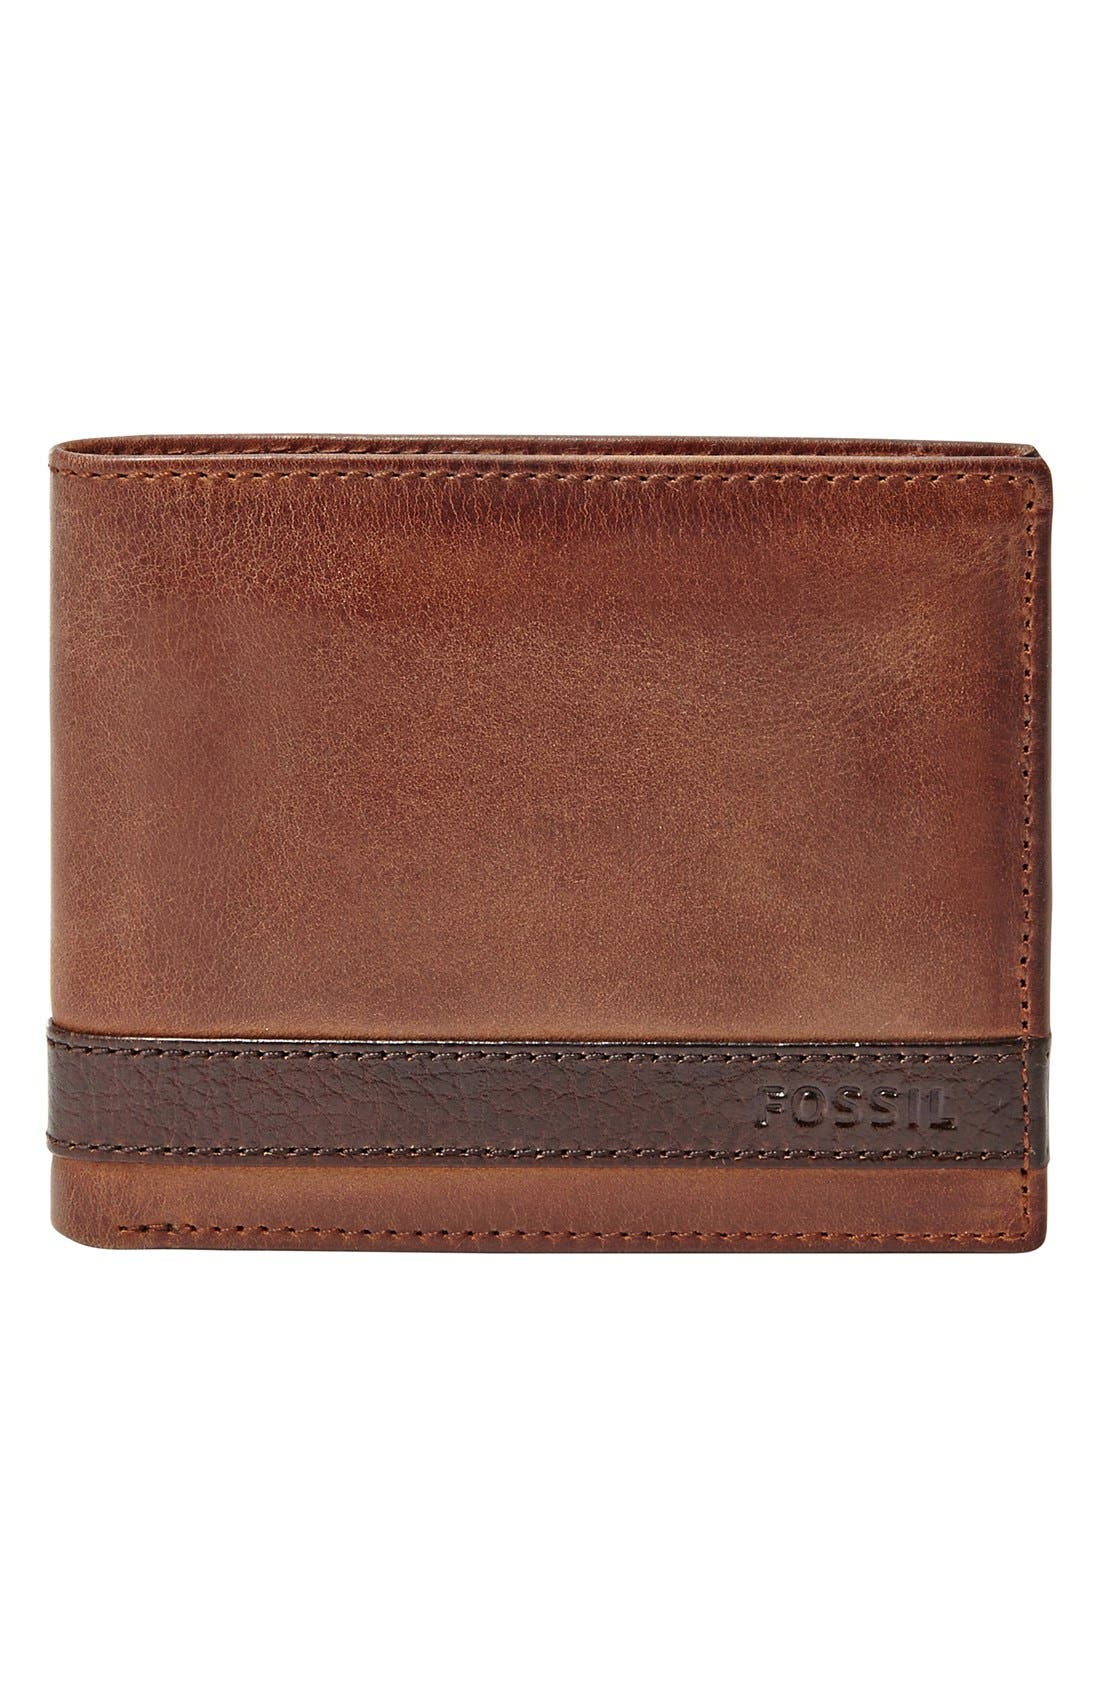 'Quinn' Leather Bifold Wallet,                             Main thumbnail 1, color,                             BROWN